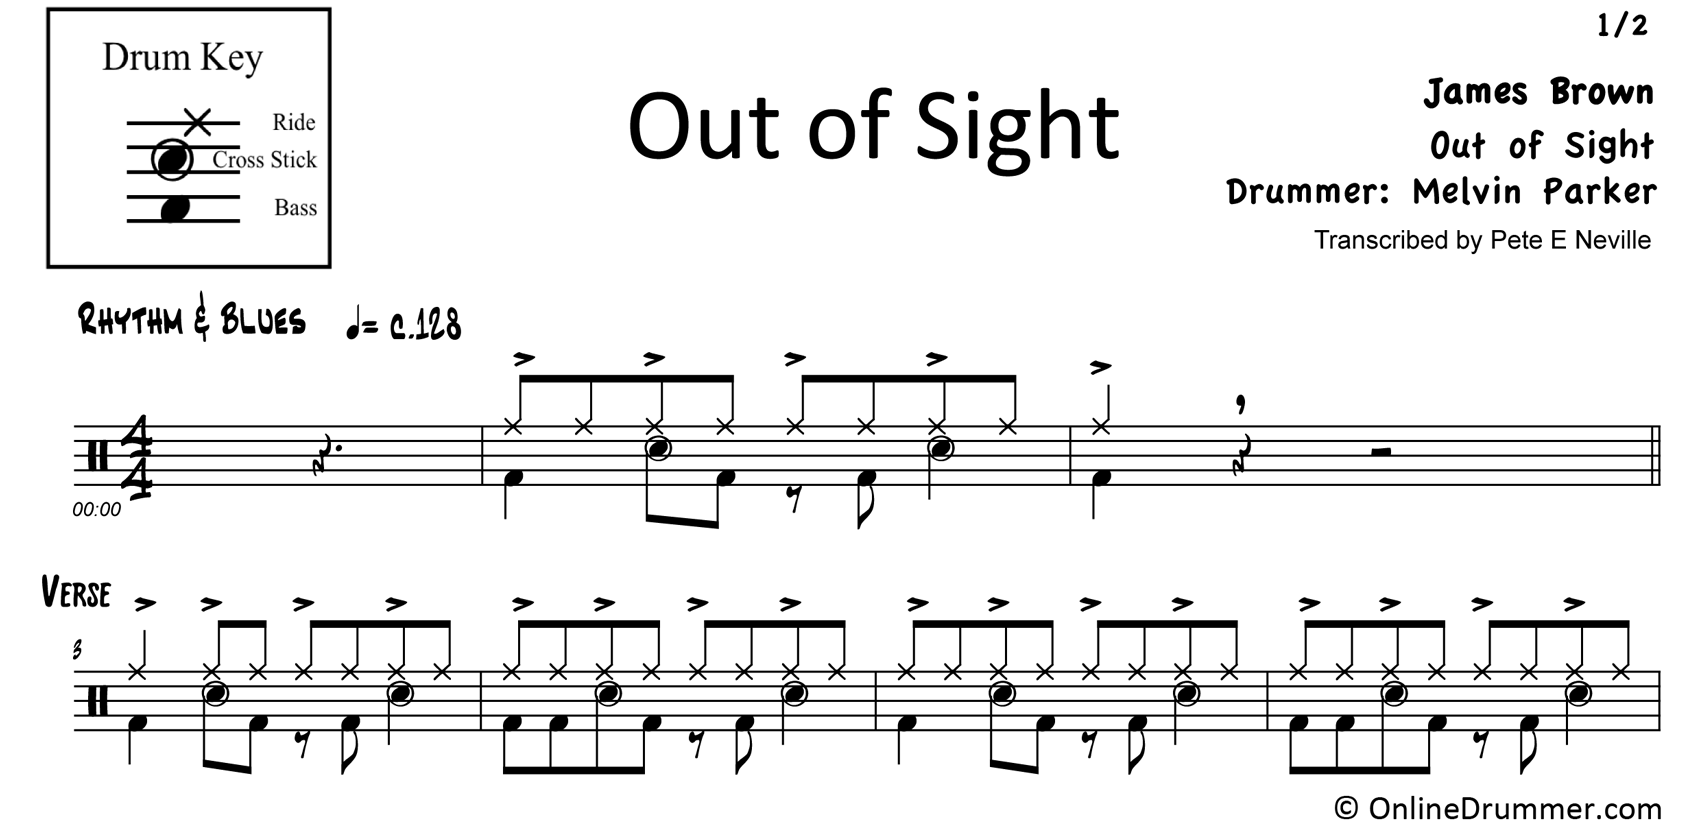 Out of Sight - James Brown - Drum Sheet Music